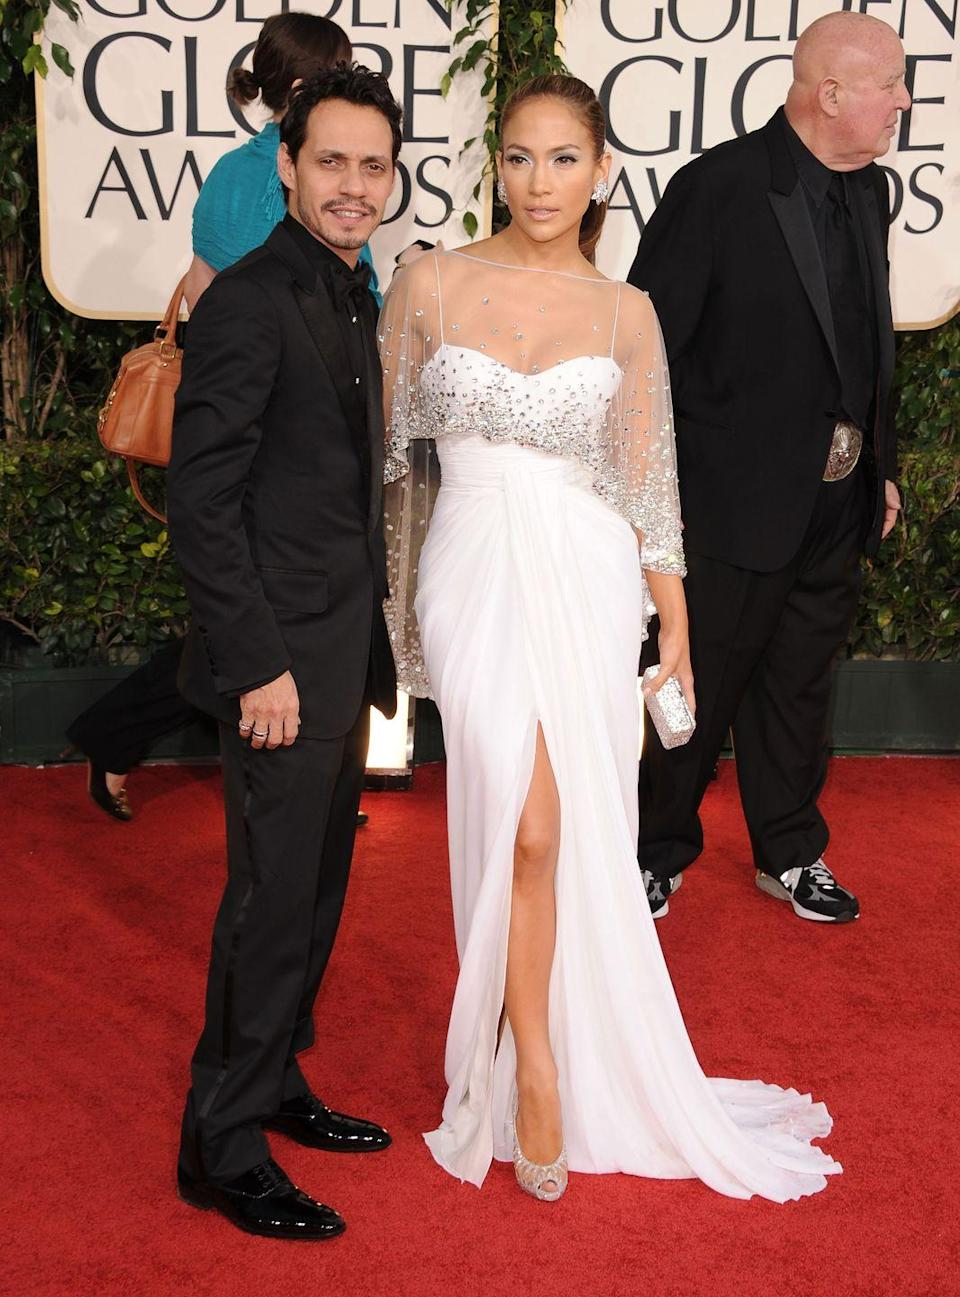 <p><strong>When: </strong>January 2011</p><p><strong>Where: </strong>The Golden Globes</p><p><strong>Wearing: </strong>Zuhair Murad</p>